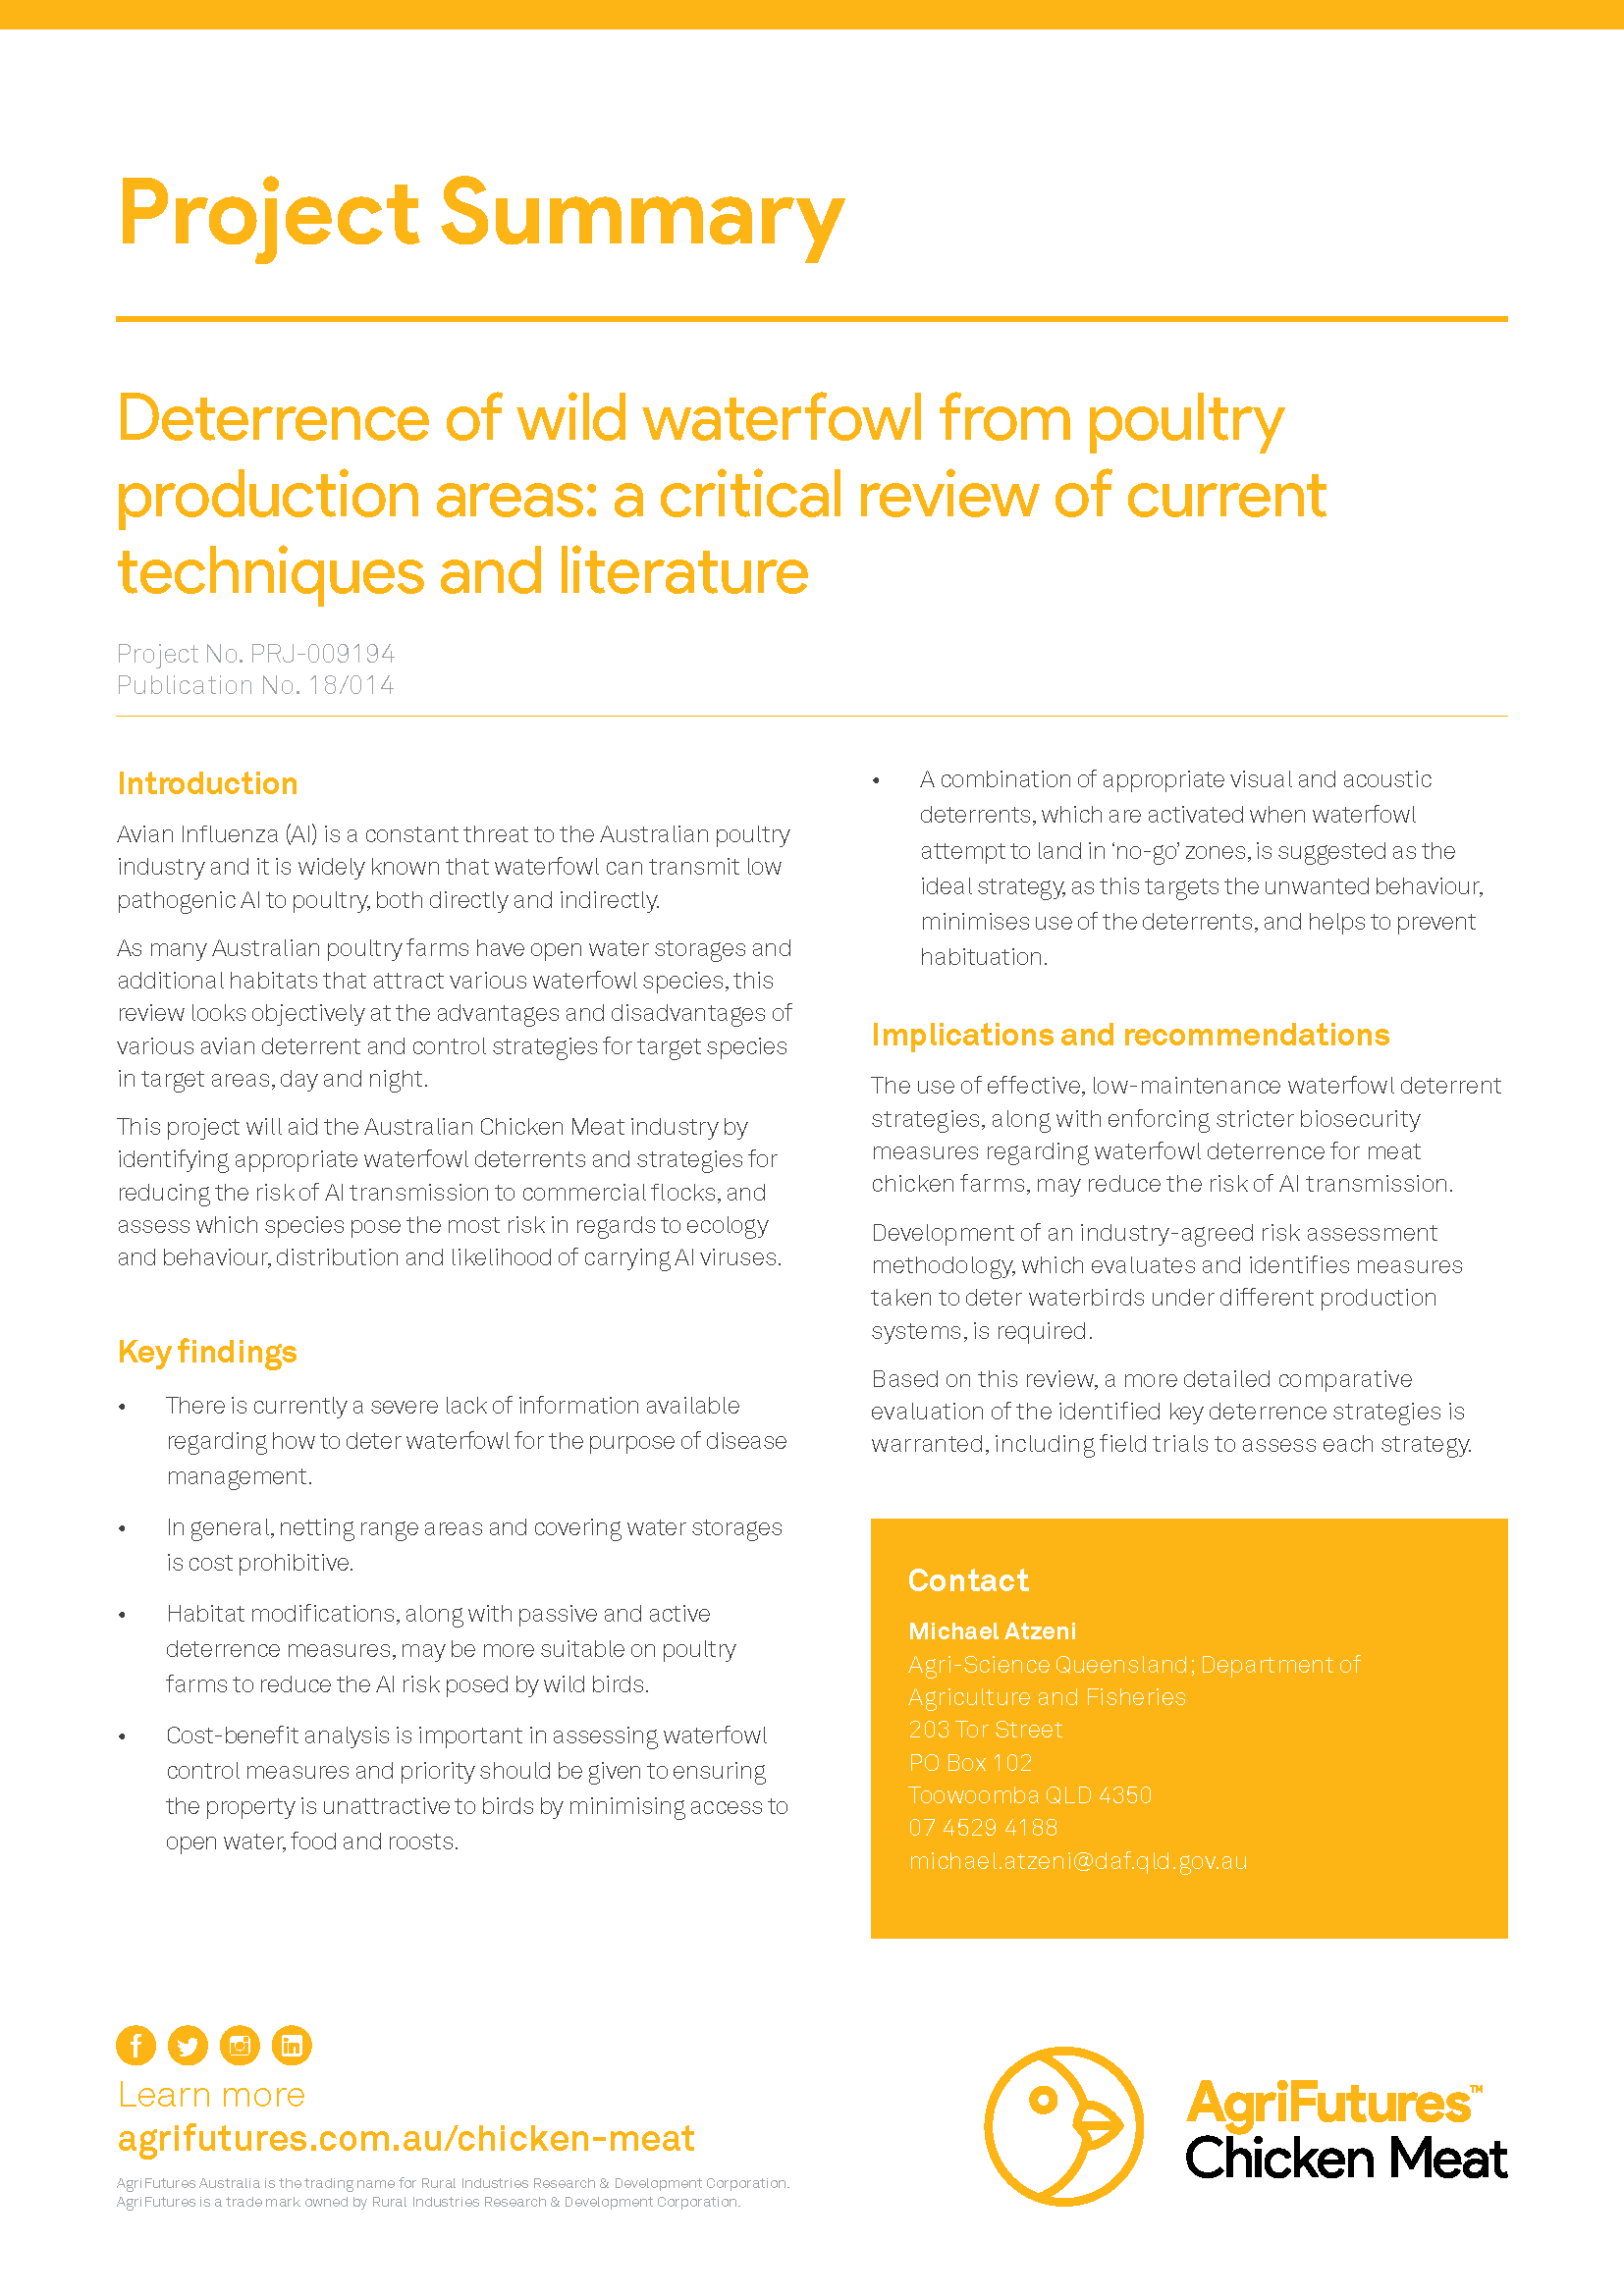 Project summary: Deterrence of wild waterfowl from poultry production areas: a critical review of current techniques and literature - image